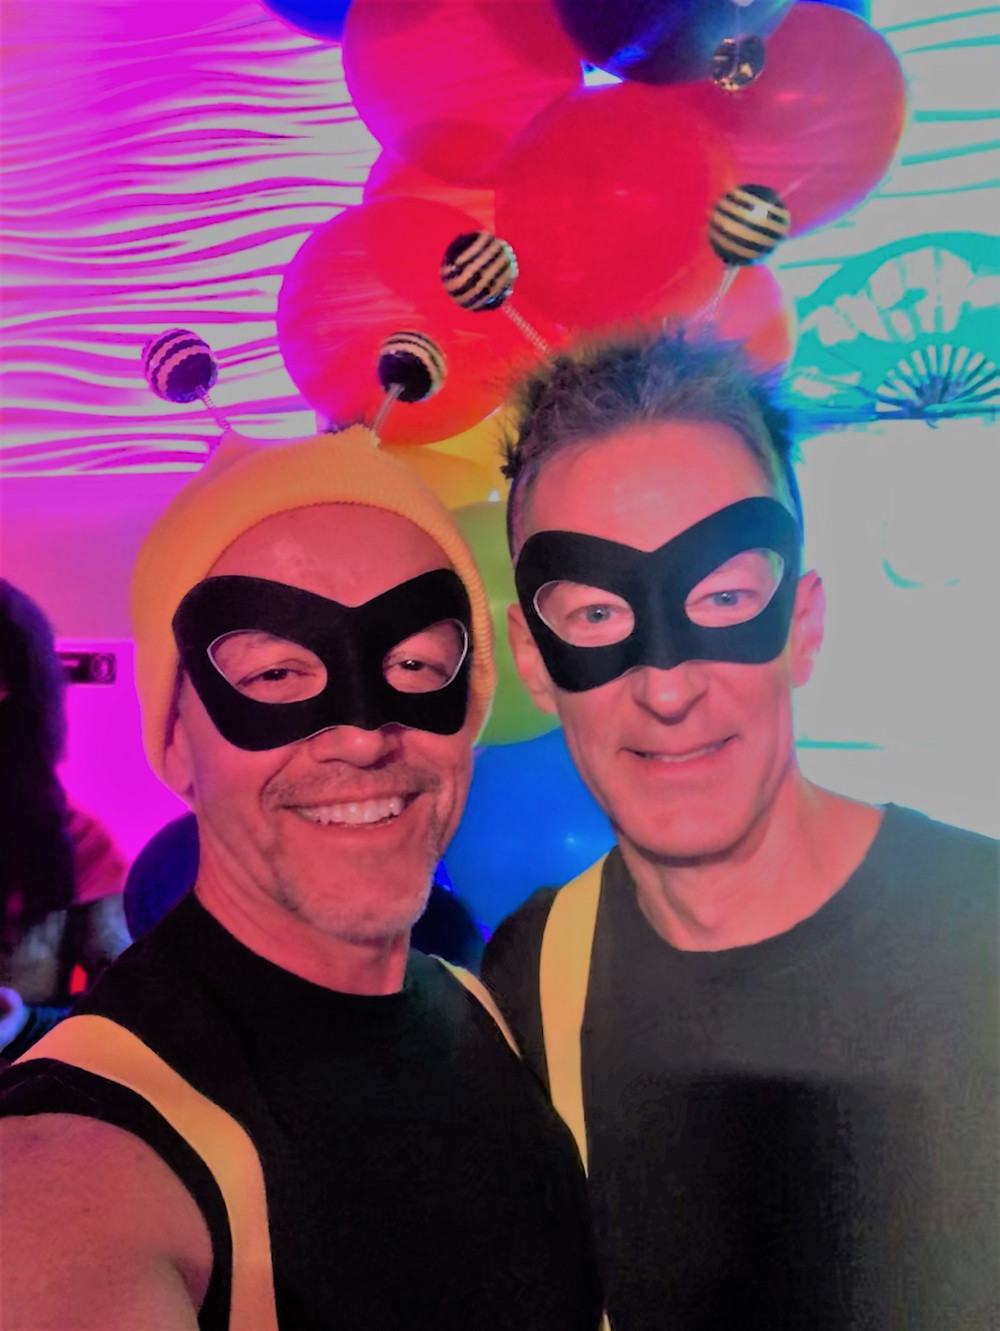 Halloween 2019 party at Hunters Bar in Palm Springs